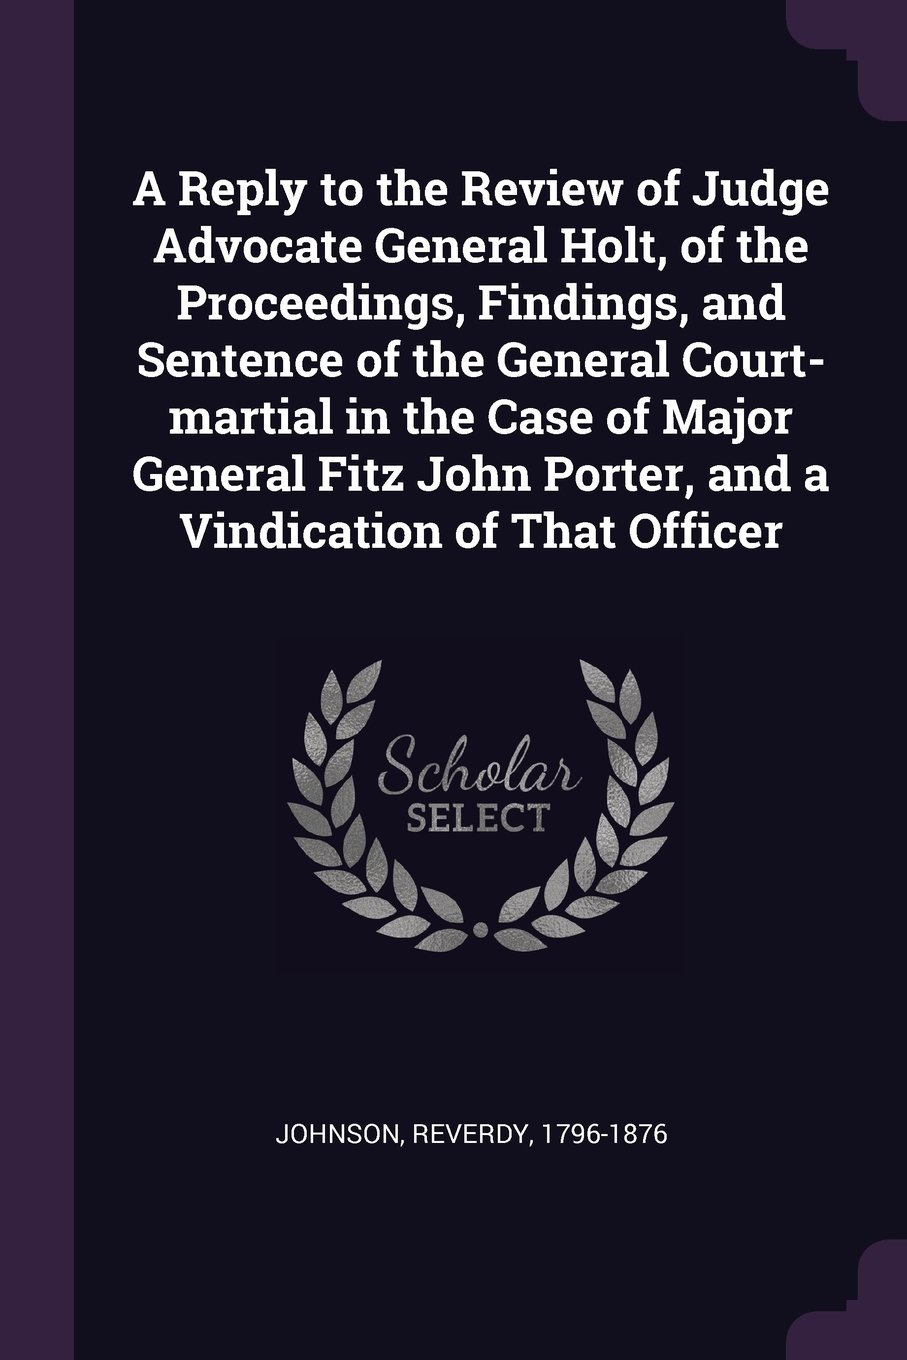 Download A Reply to the Review of Judge Advocate General Holt, of the Proceedings, Findings, and Sentence of the General Court-martial in the Case of Major ... Porter, and a Vindication of That Officer pdf